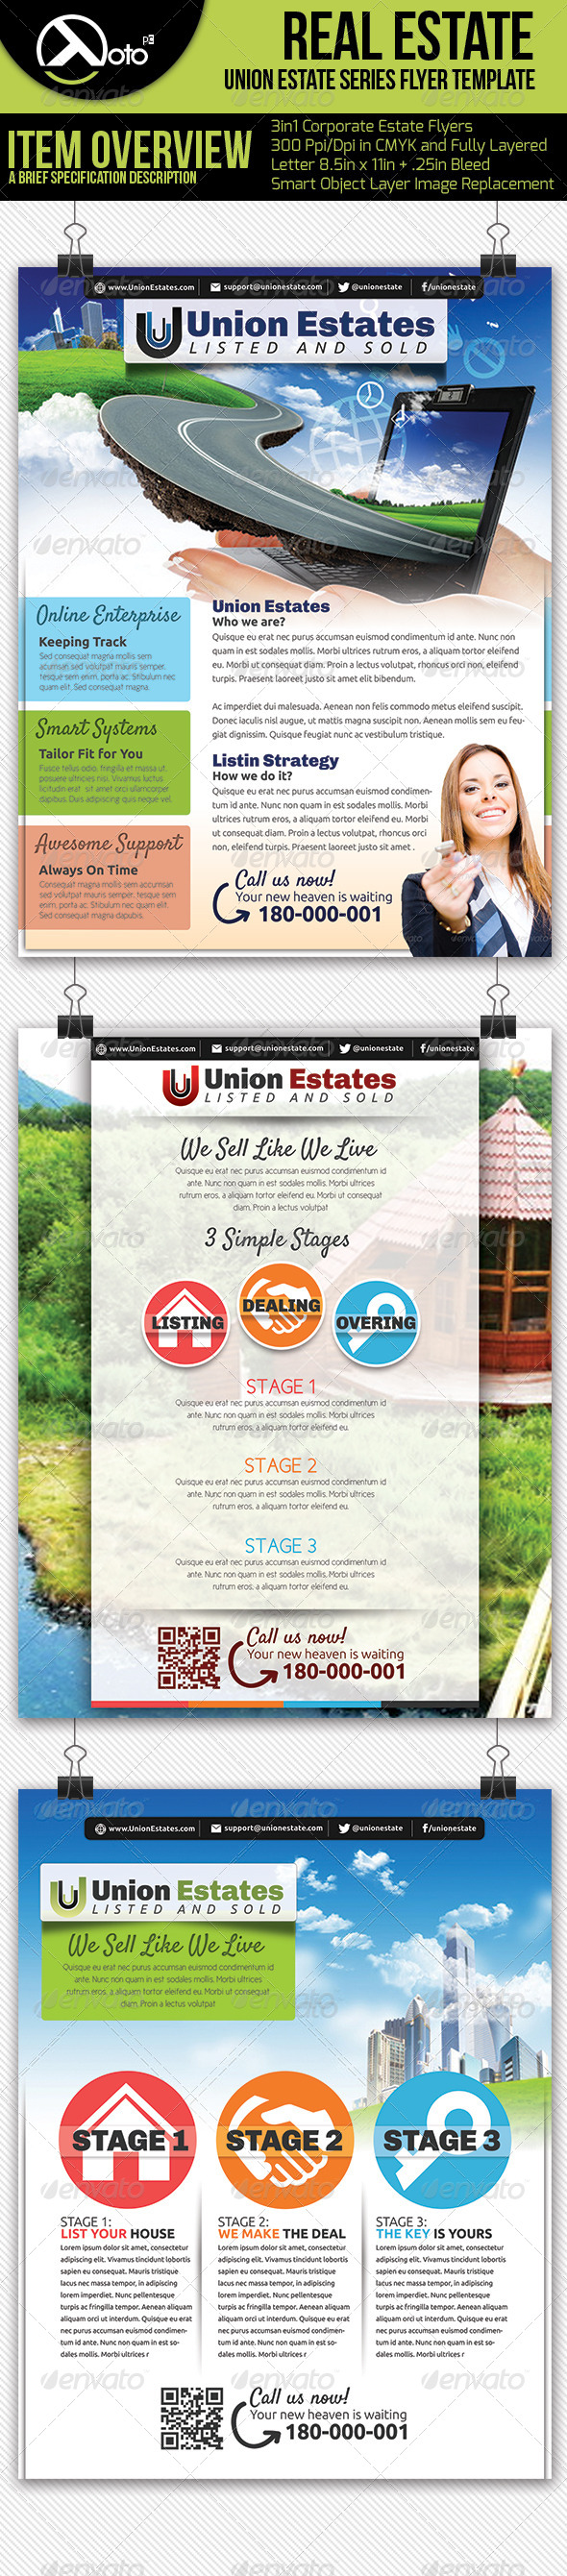 GraphicRiver 3 in 1 Real Estate Flyers 5433566